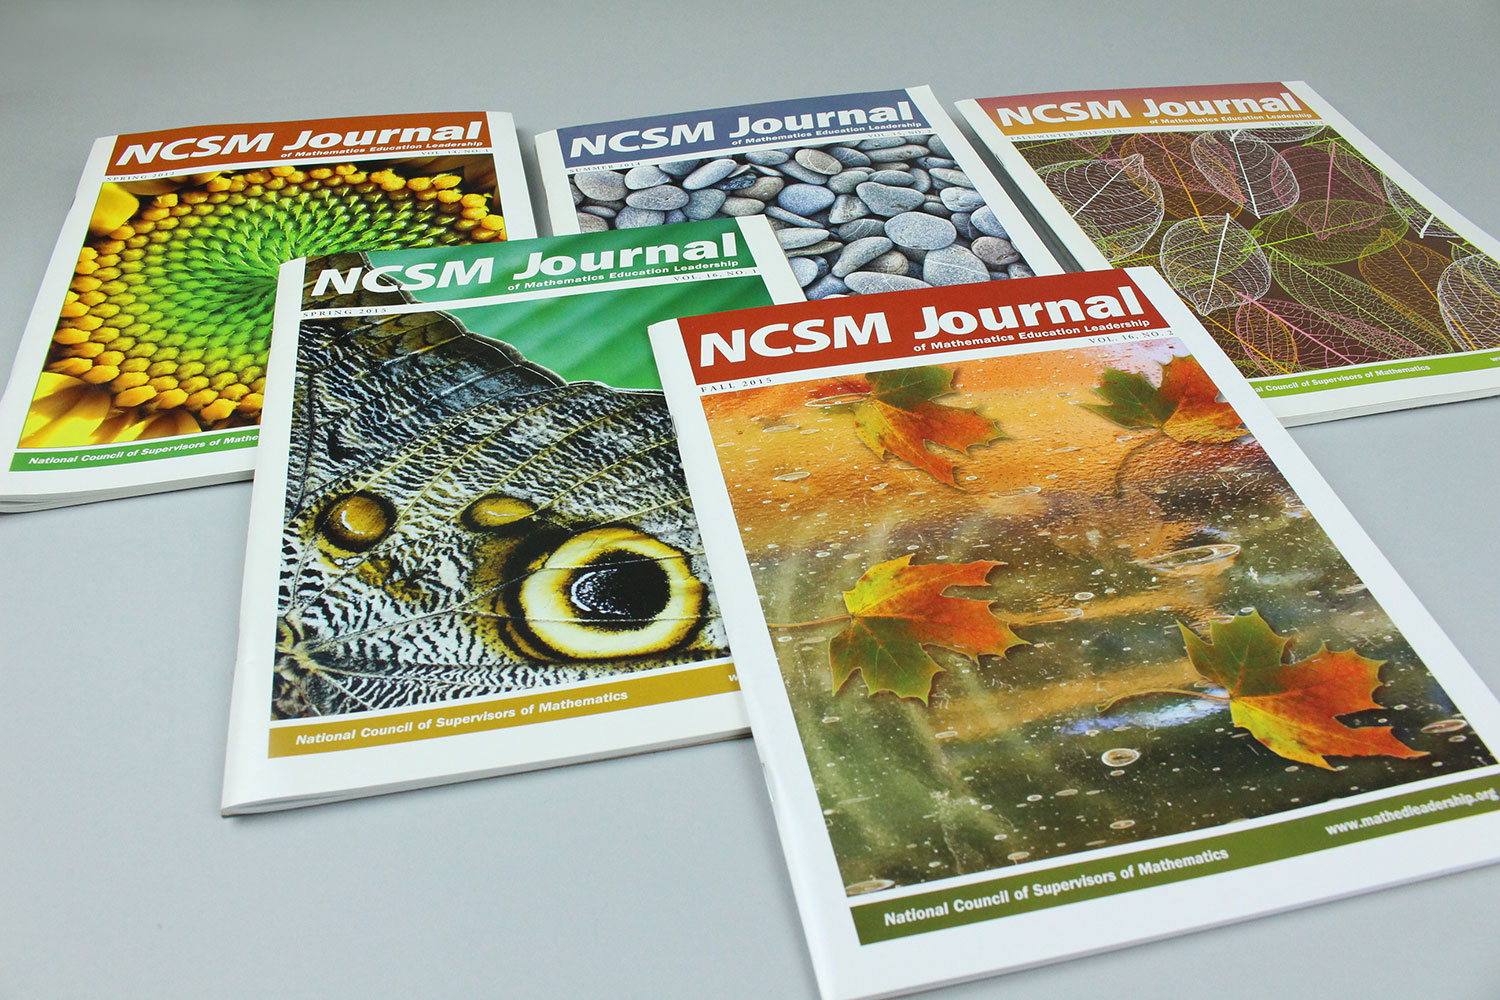 Bonnie Katz Design, grouping of NCSM Journal covers